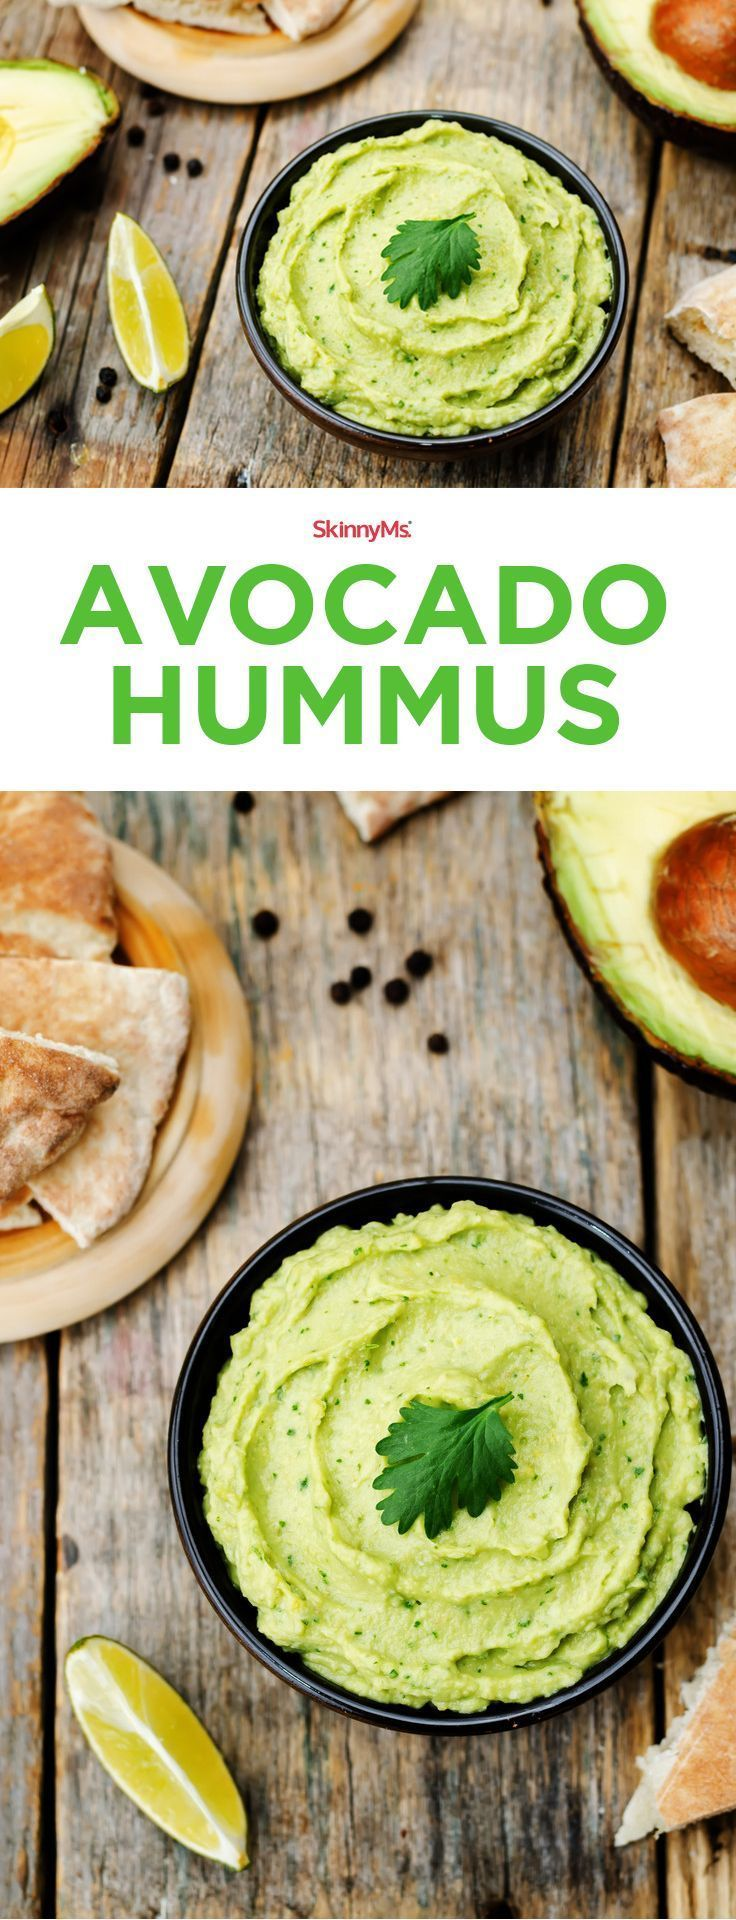 Our Avocado Hummus also makes a guilt-free snack you can enjoy any time of day! #hummus #skinnyms